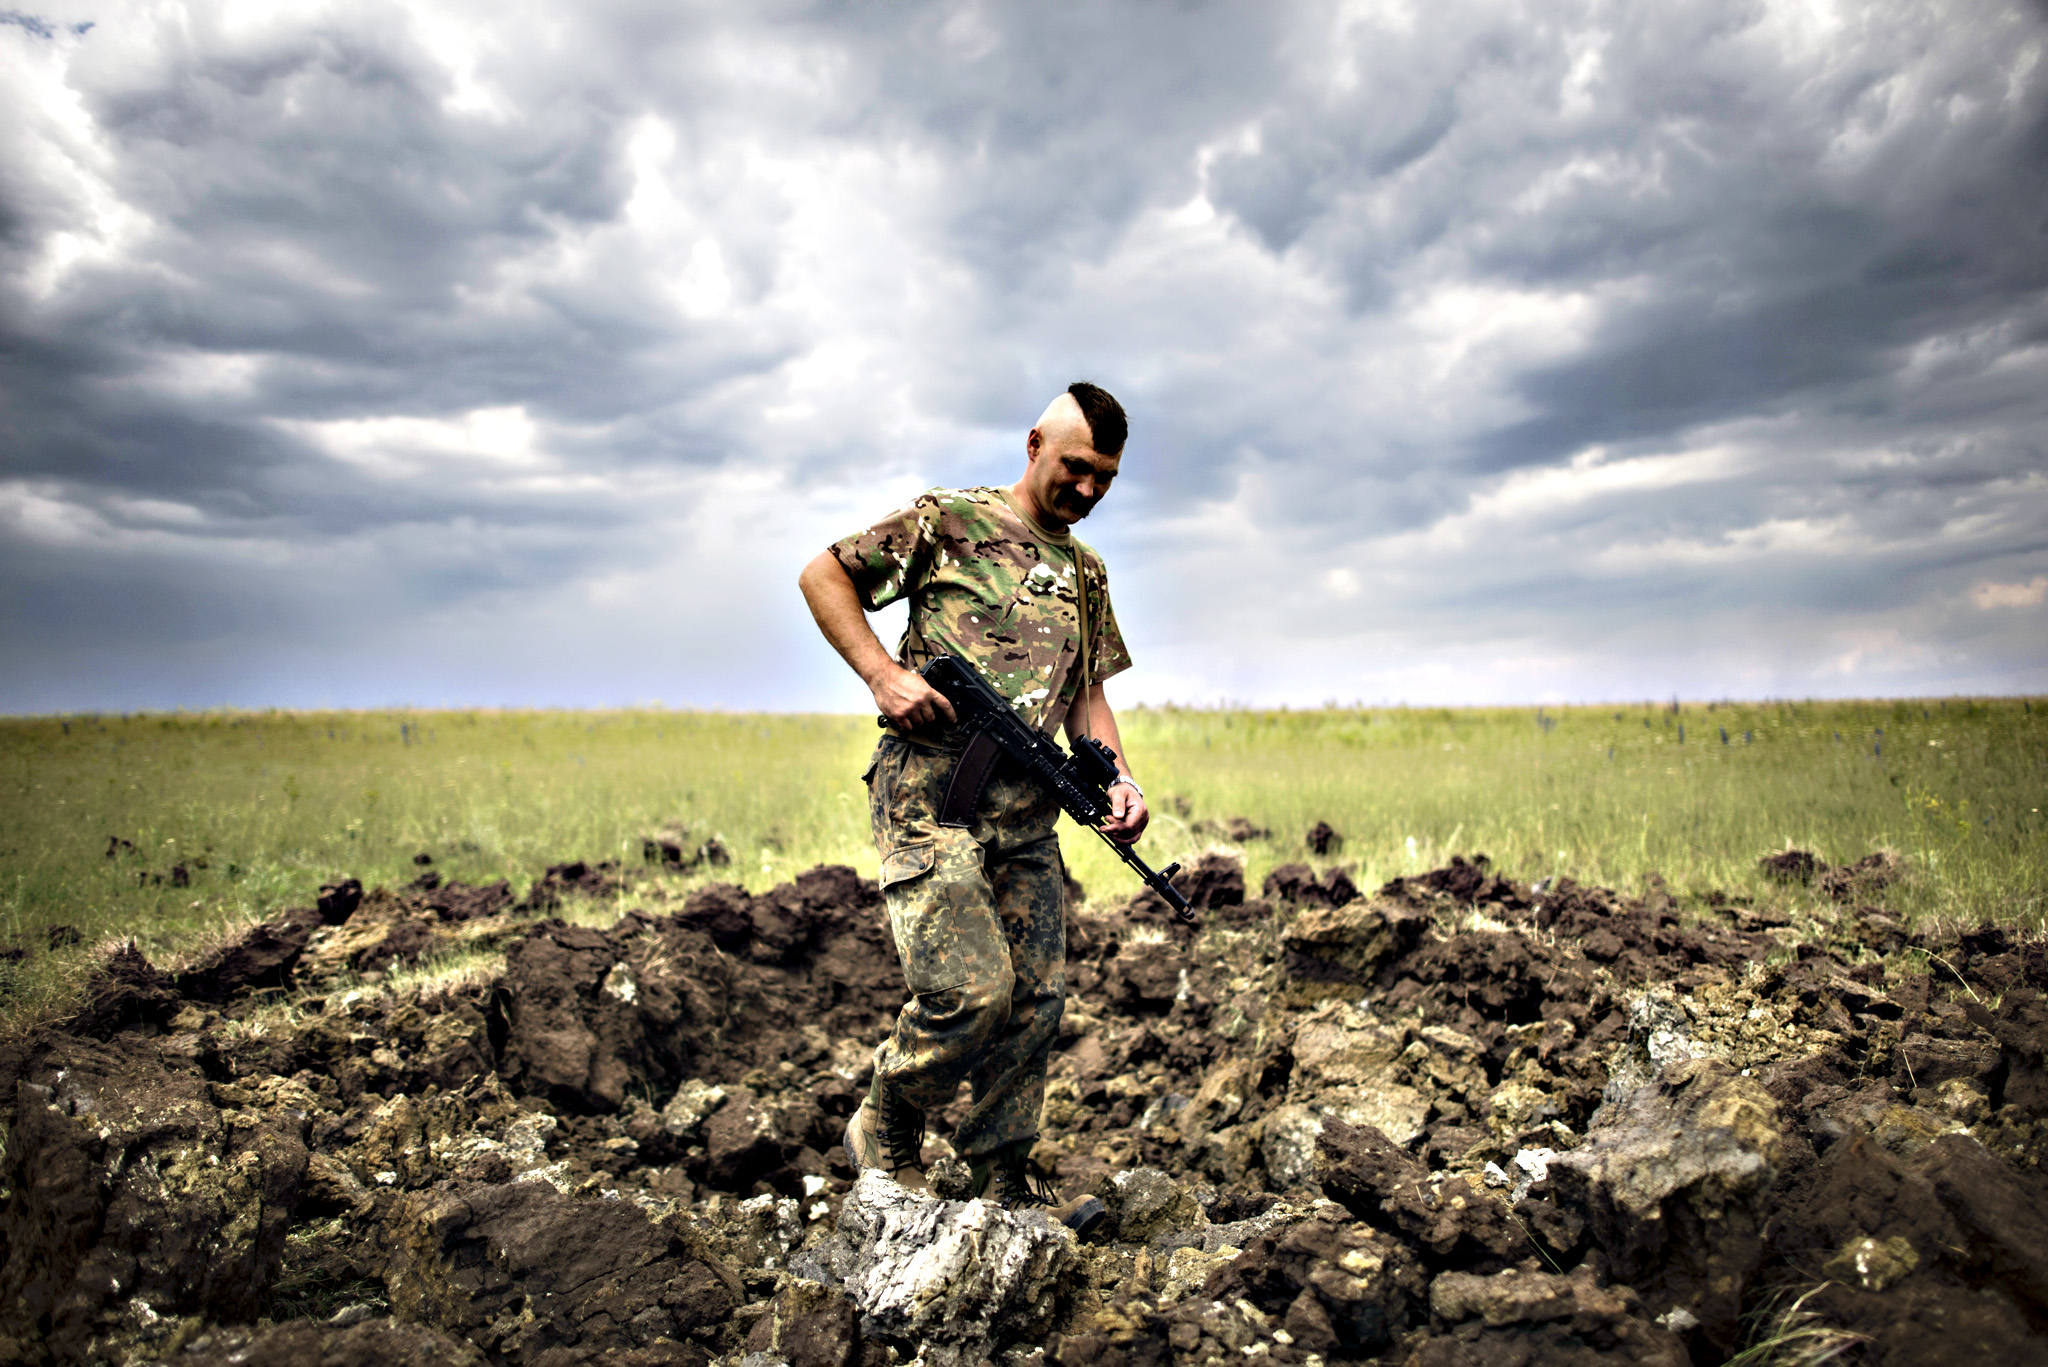 A Ukrainian serviceman investigates a crater left by a Grad rocket in the village of Toshkivka, Luhansk region, eastern Ukraine, Monday, June 15, 2015